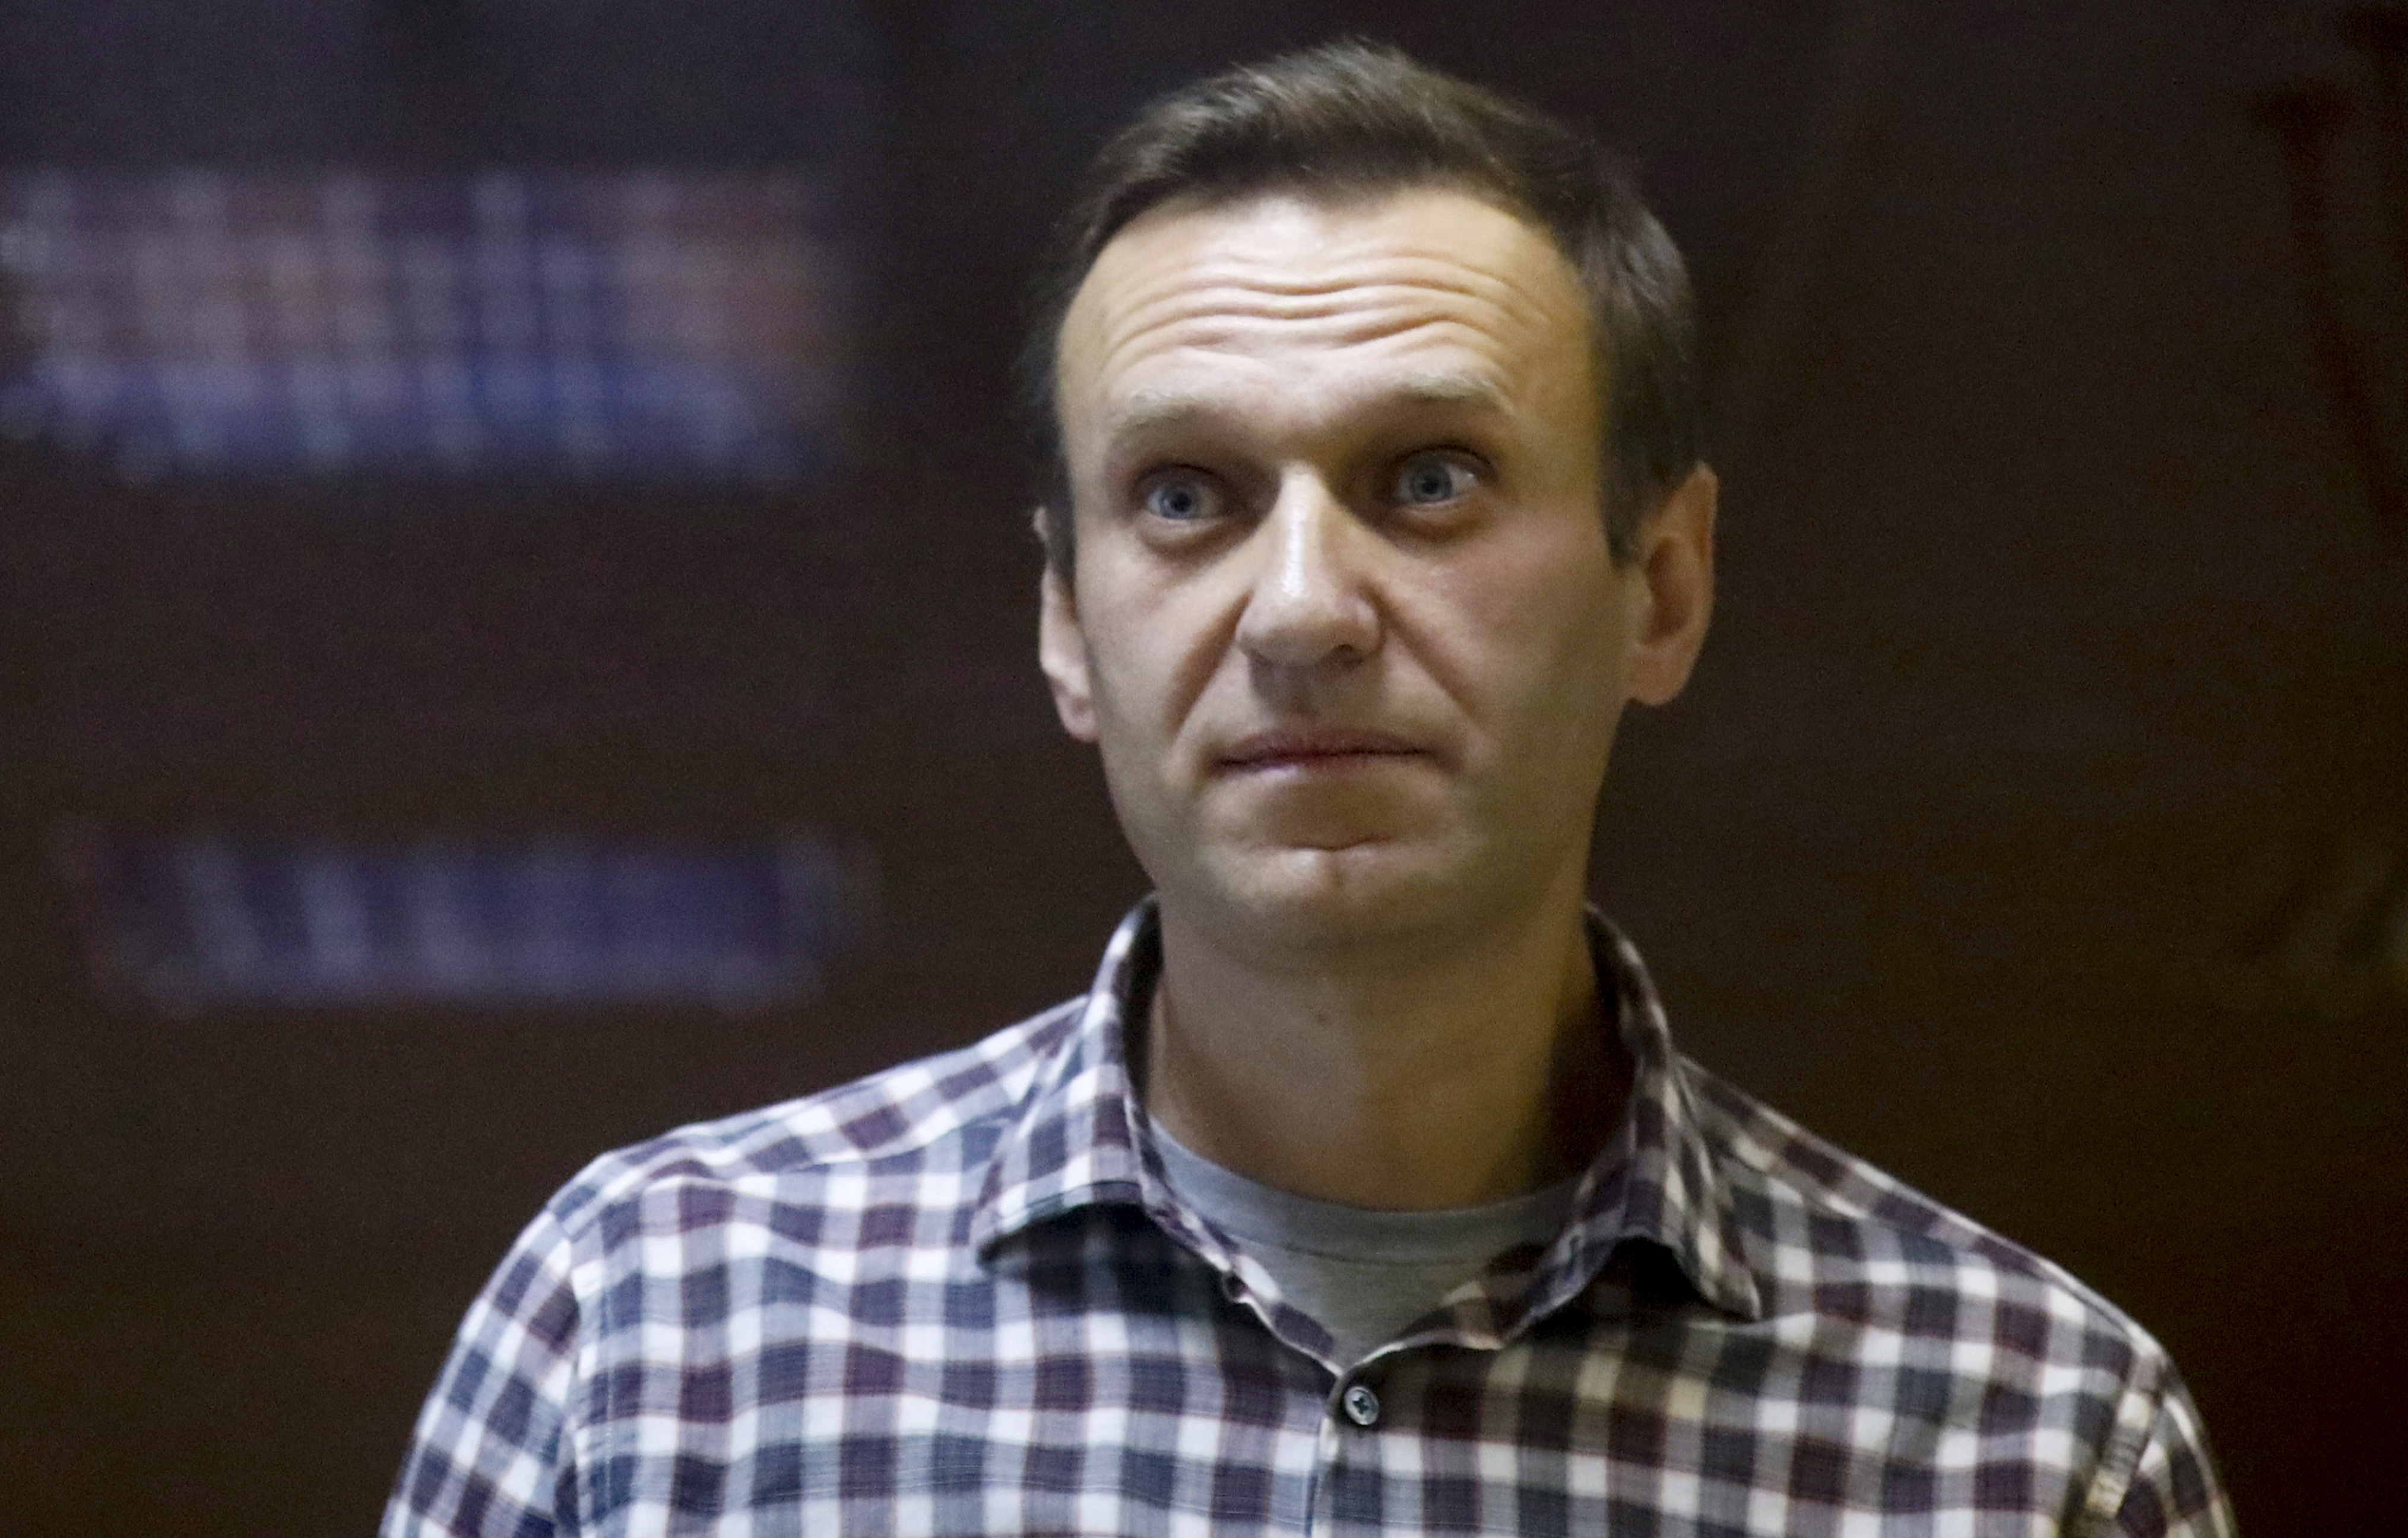 A doctor for imprisoned Russian opposition leader Alexei Navalny, who is in the third week of a hunger strike, said on Saturday that his health is deteriorating rapidly and that the 44-year-old Kremlin critic could be on the verge of death.